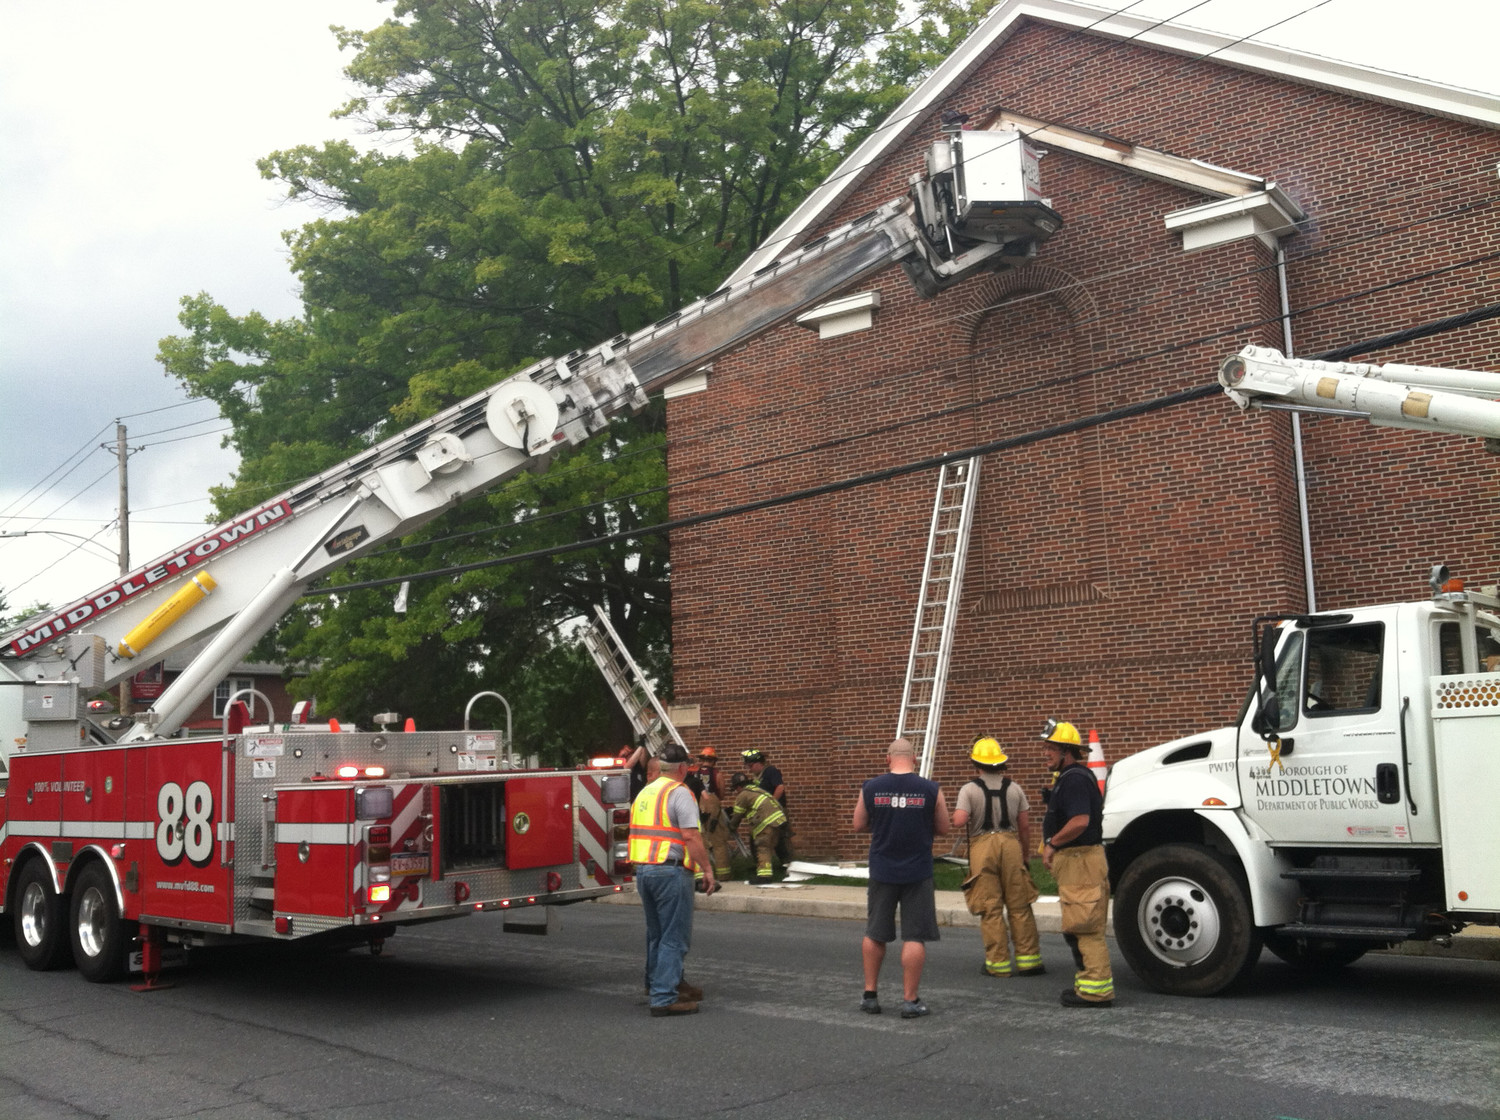 Middletown firefighters investigate an electrical short circuit that caused minor damage to the exterior of the Calvary Orthodox Presbyterian Church at Spruce and East Emaus streets at about 3 p.m. on Thursday, July 5.